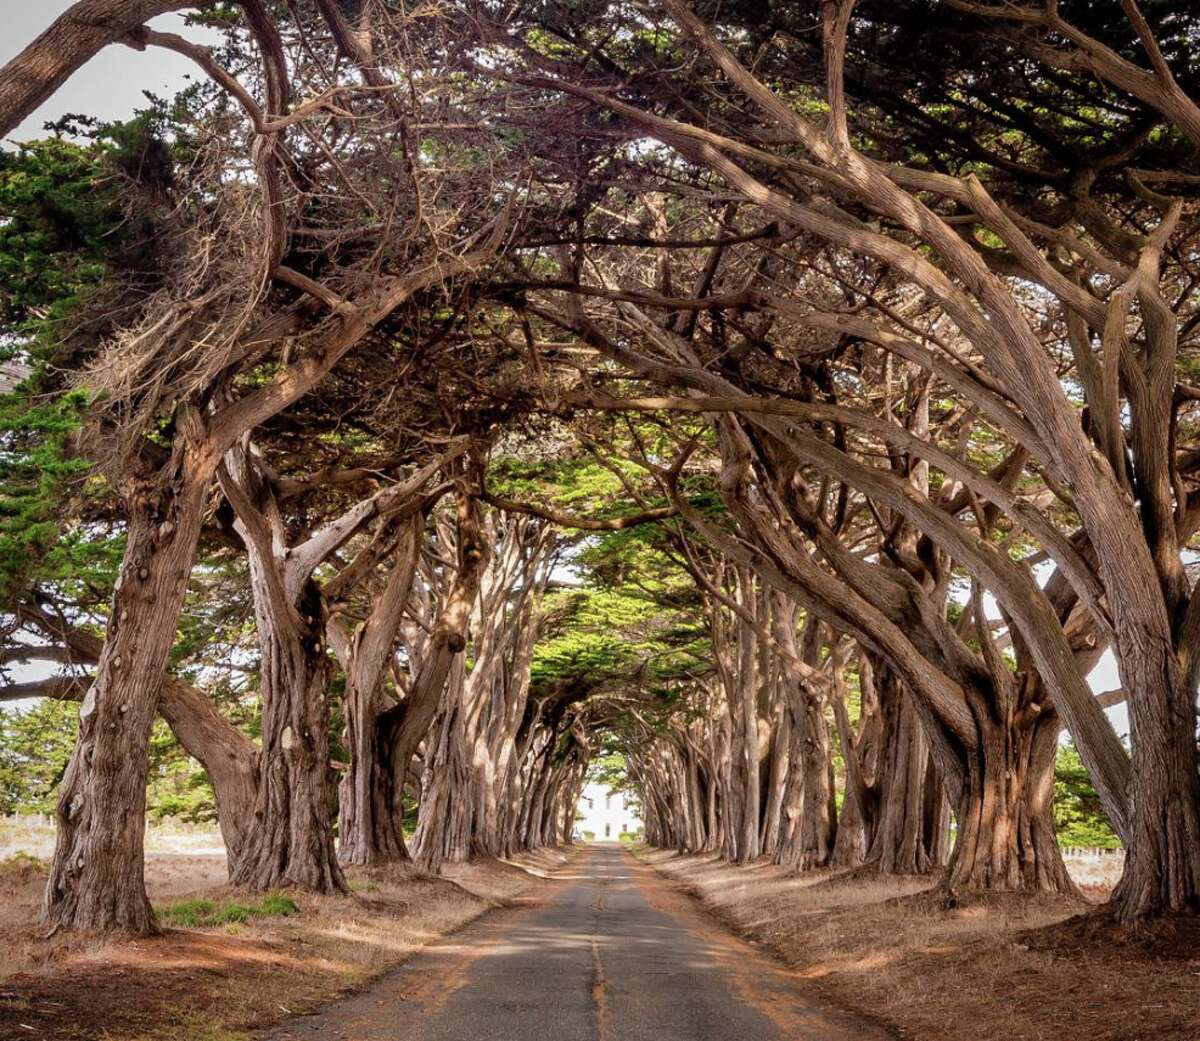 Cypress Tree Tunnel Perhaps you've seen this famous tree formation on Instagram. You can find it - and snap your own epic picture - in Point Reyes National Seashore off Sir Francis Drake Boulevard.  Google Maps location